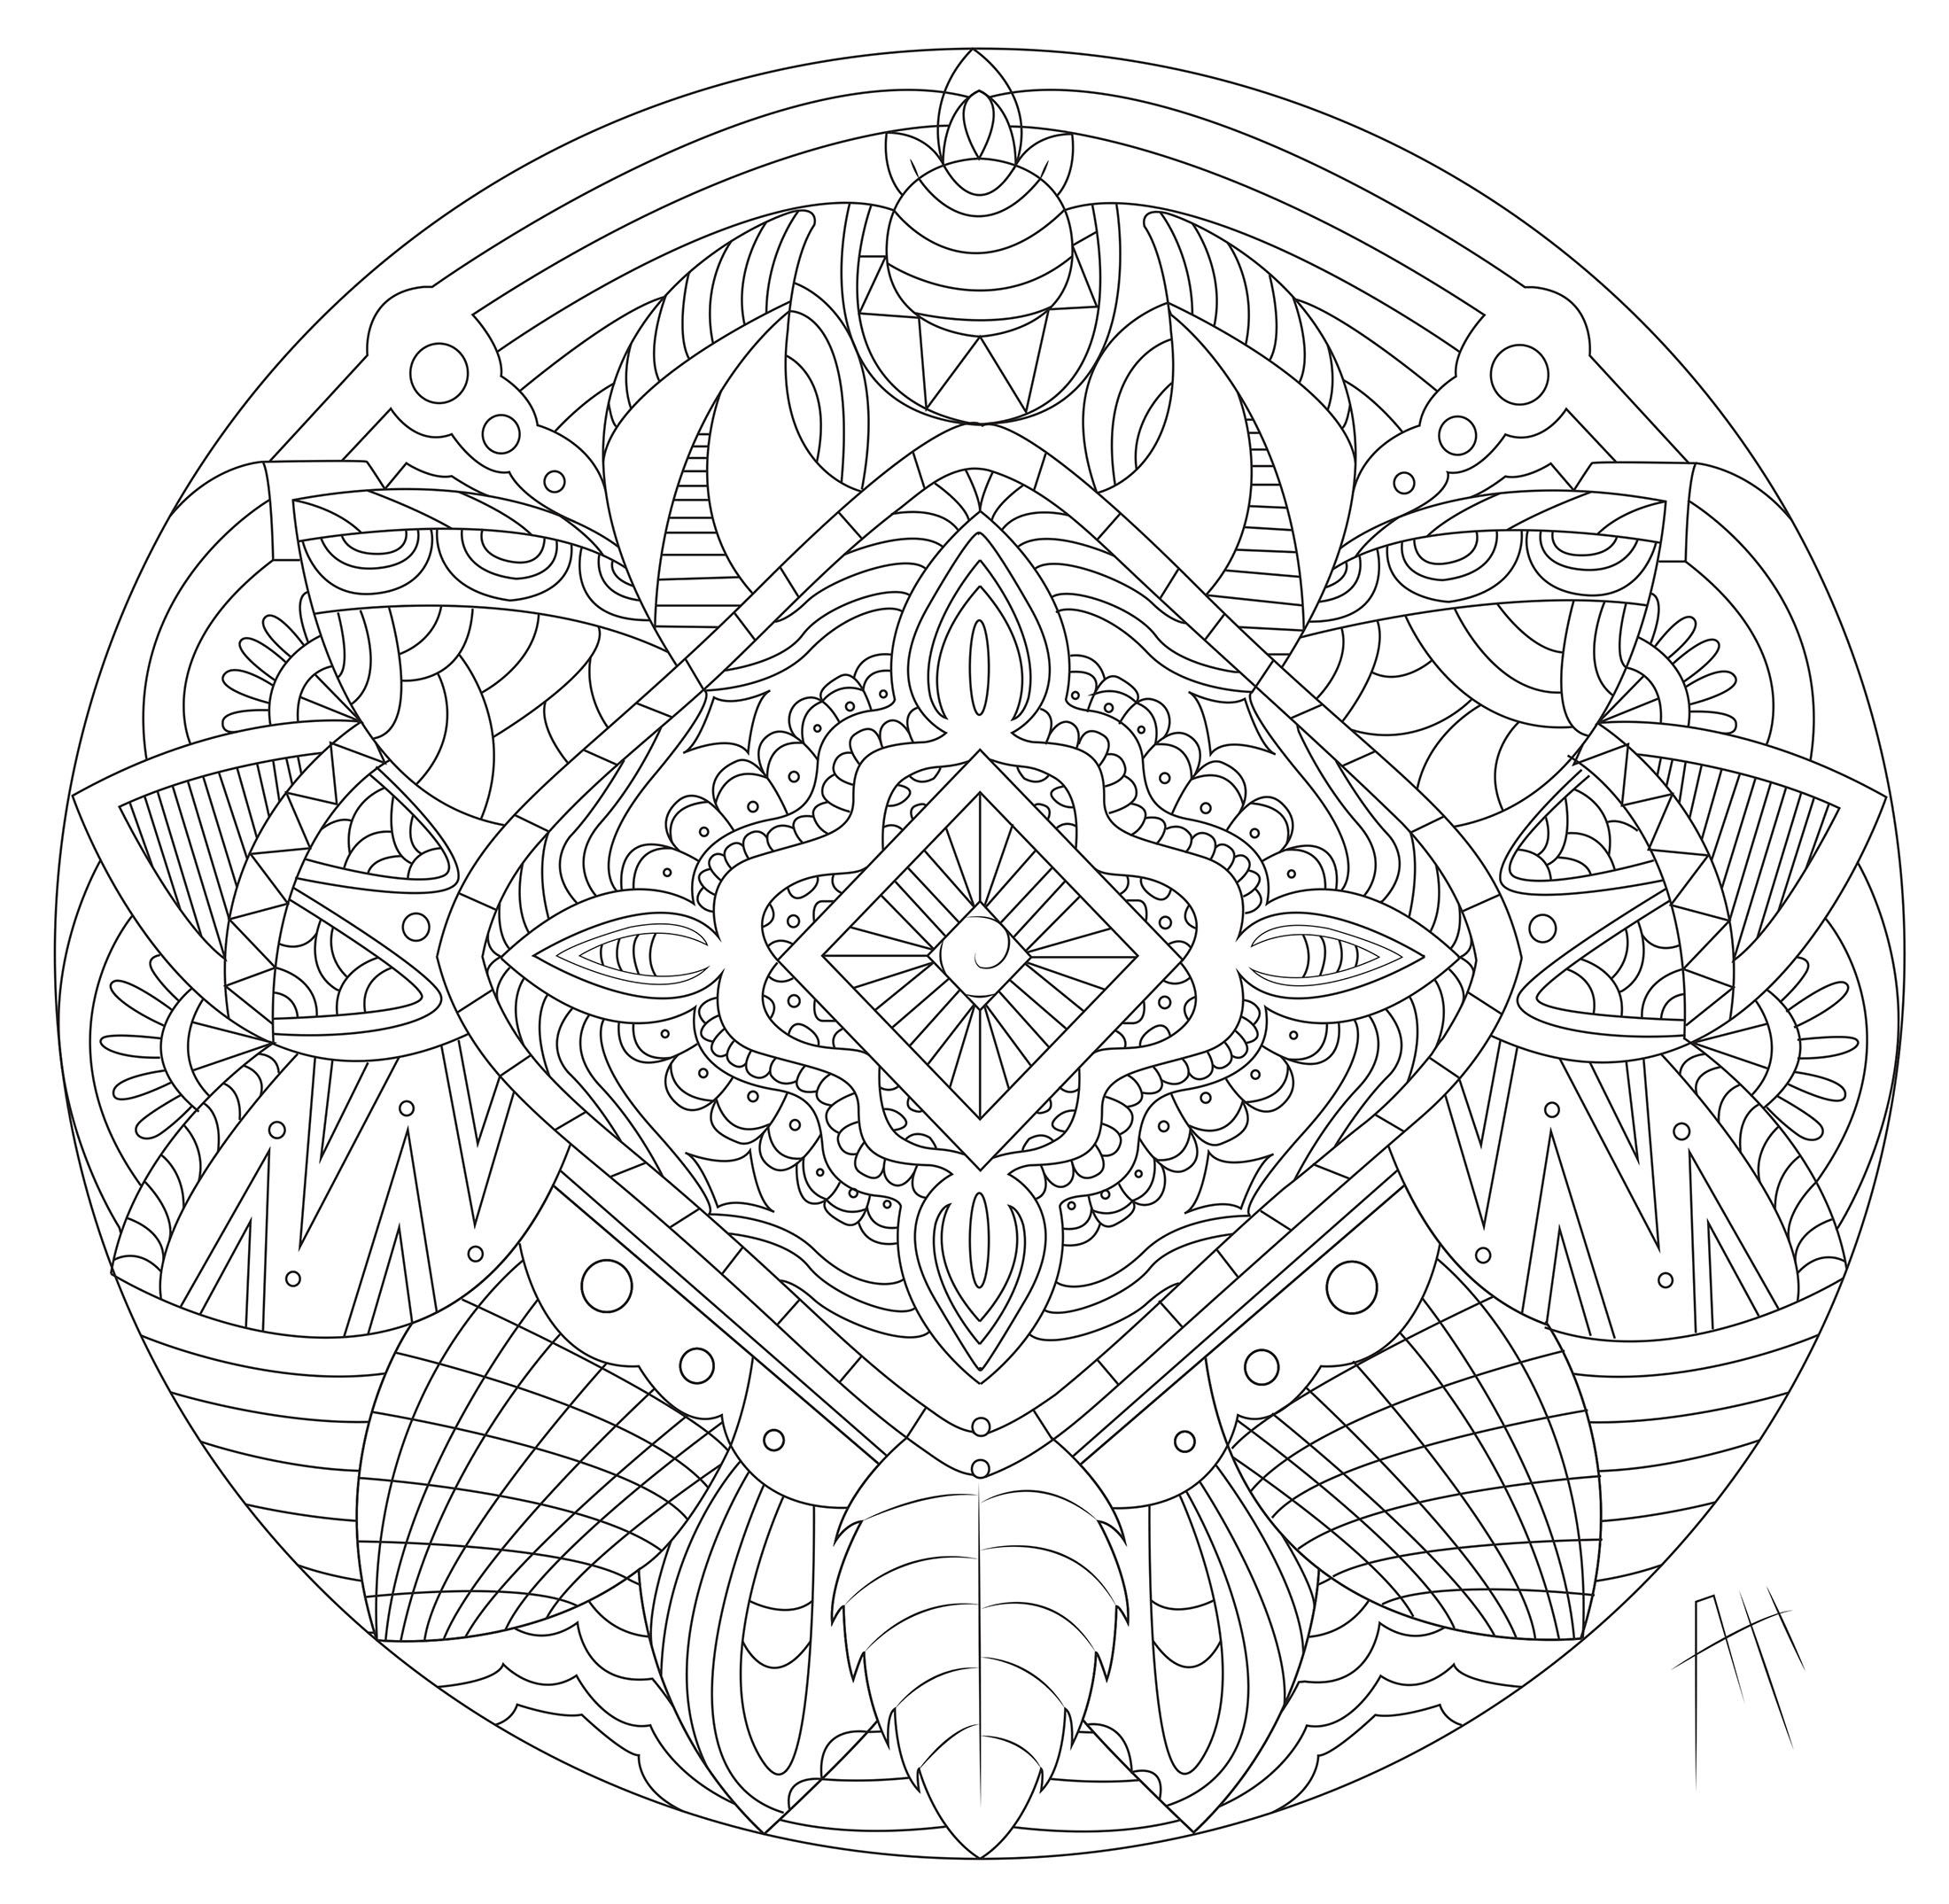 Mandala With Flowers And Feathers Mandalas Coloring Pages For